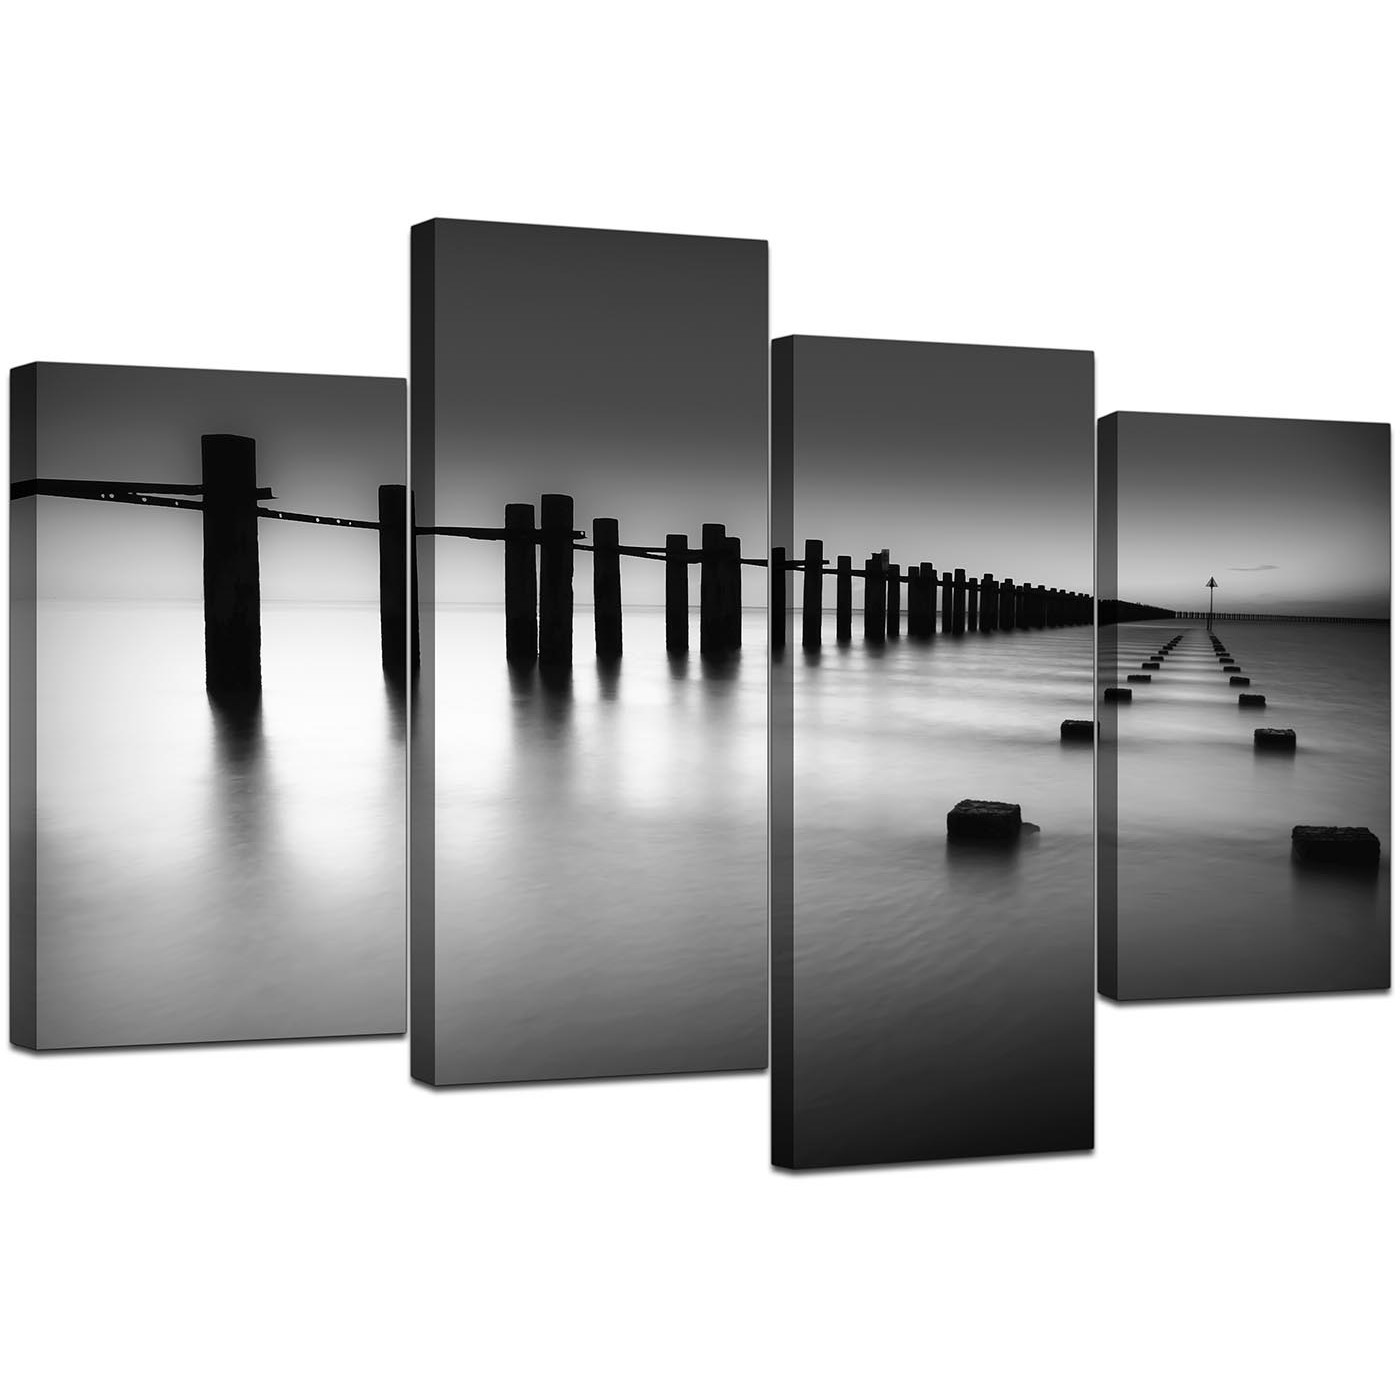 Black white beach scenery landscape canvas split 4 part 130cm 4085